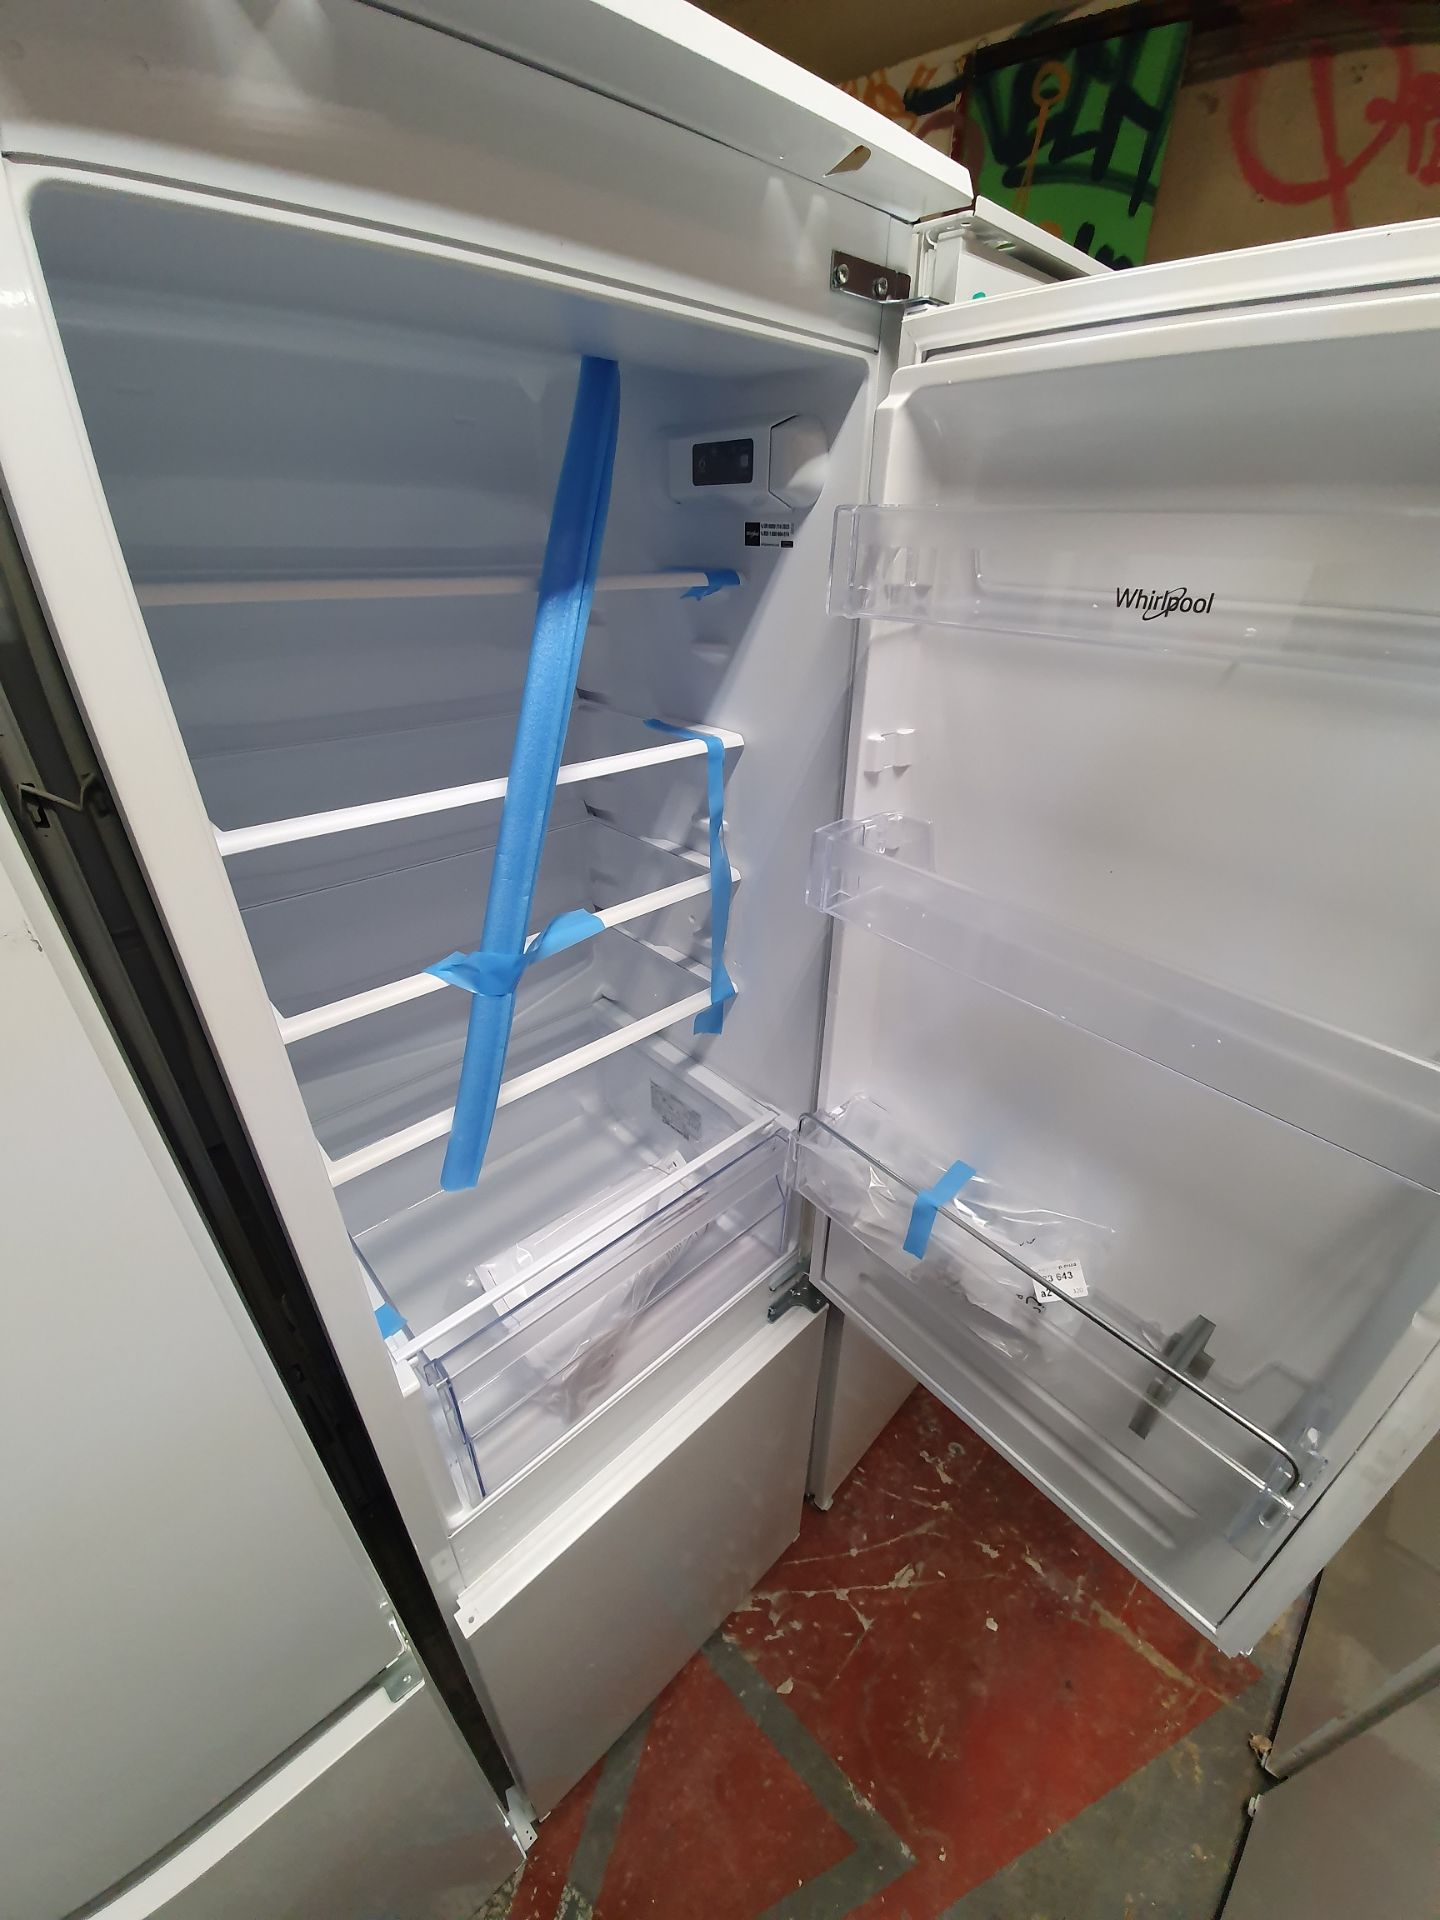 NEW/GRADED AND UNPACKAGED Whirlpool, ART6550/A+SF.1, Integrated Fridge Freezer (Brand new slight - Image 10 of 14